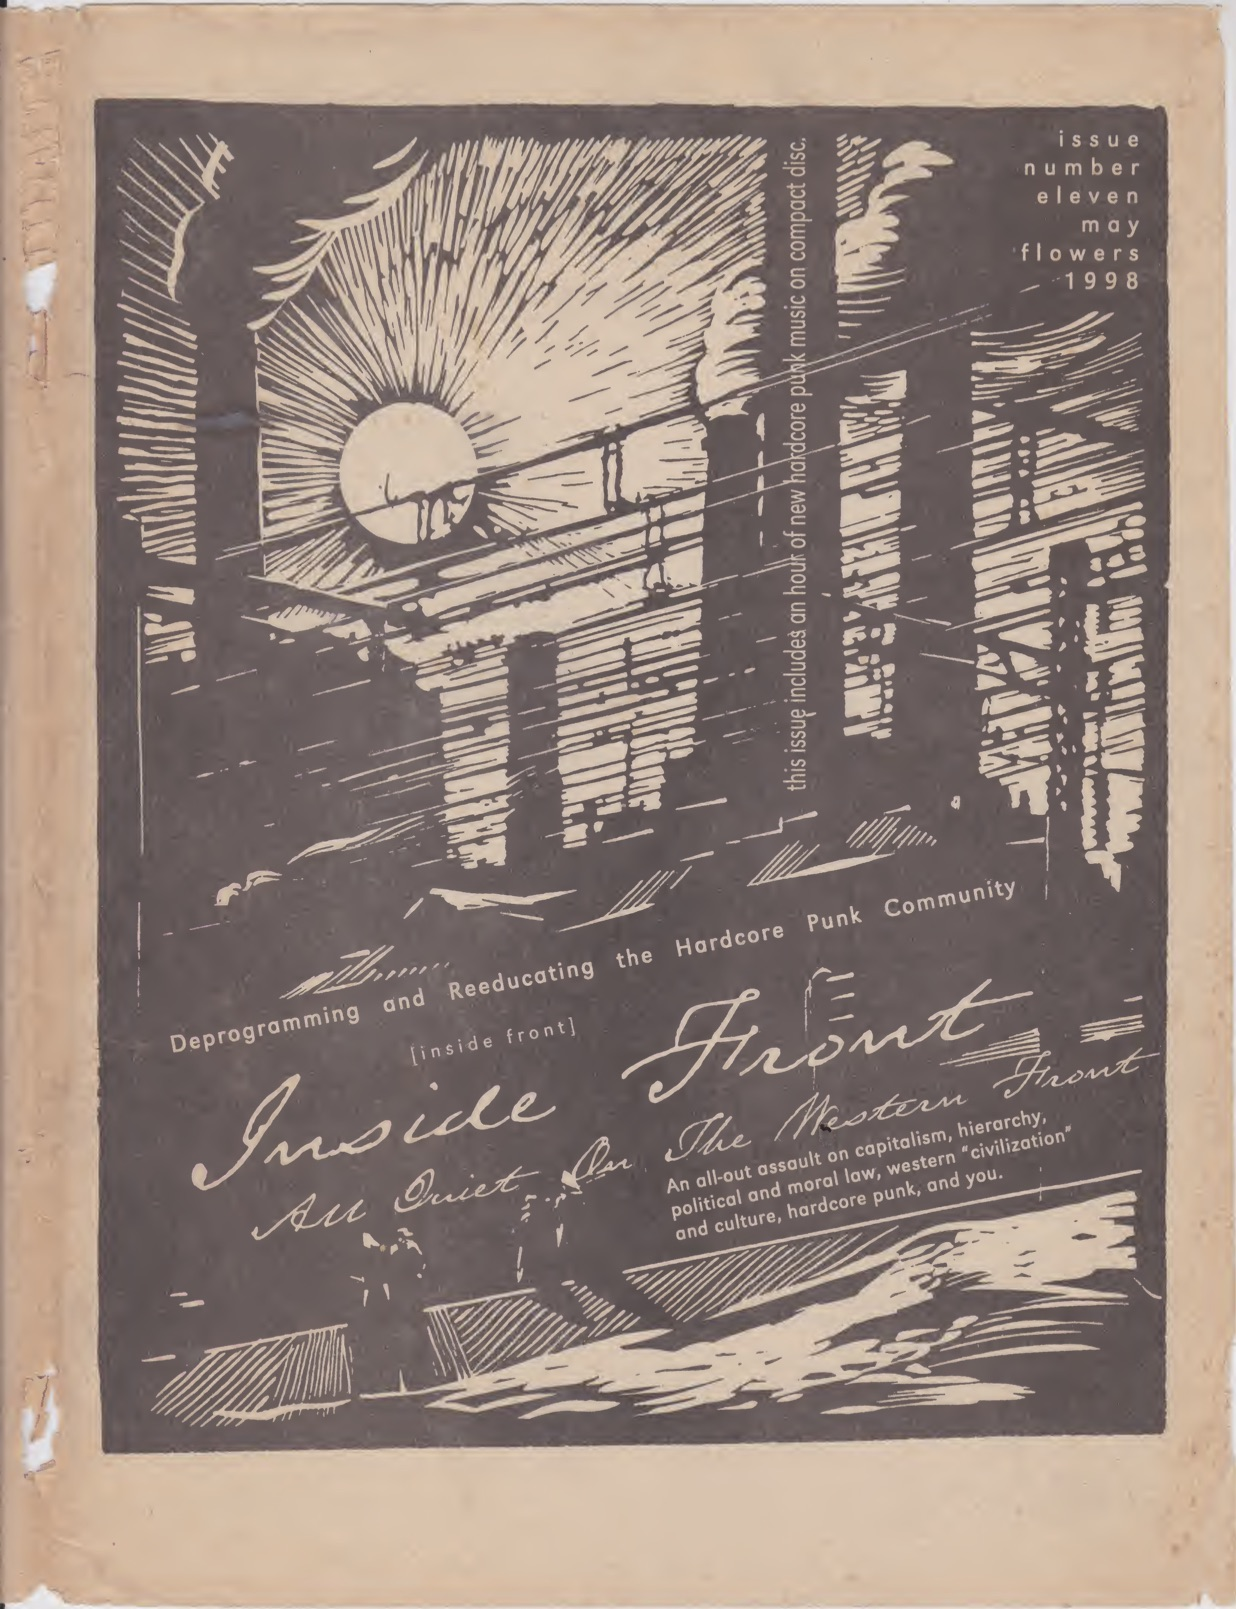 Photo of 'Inside Front #11' front cover